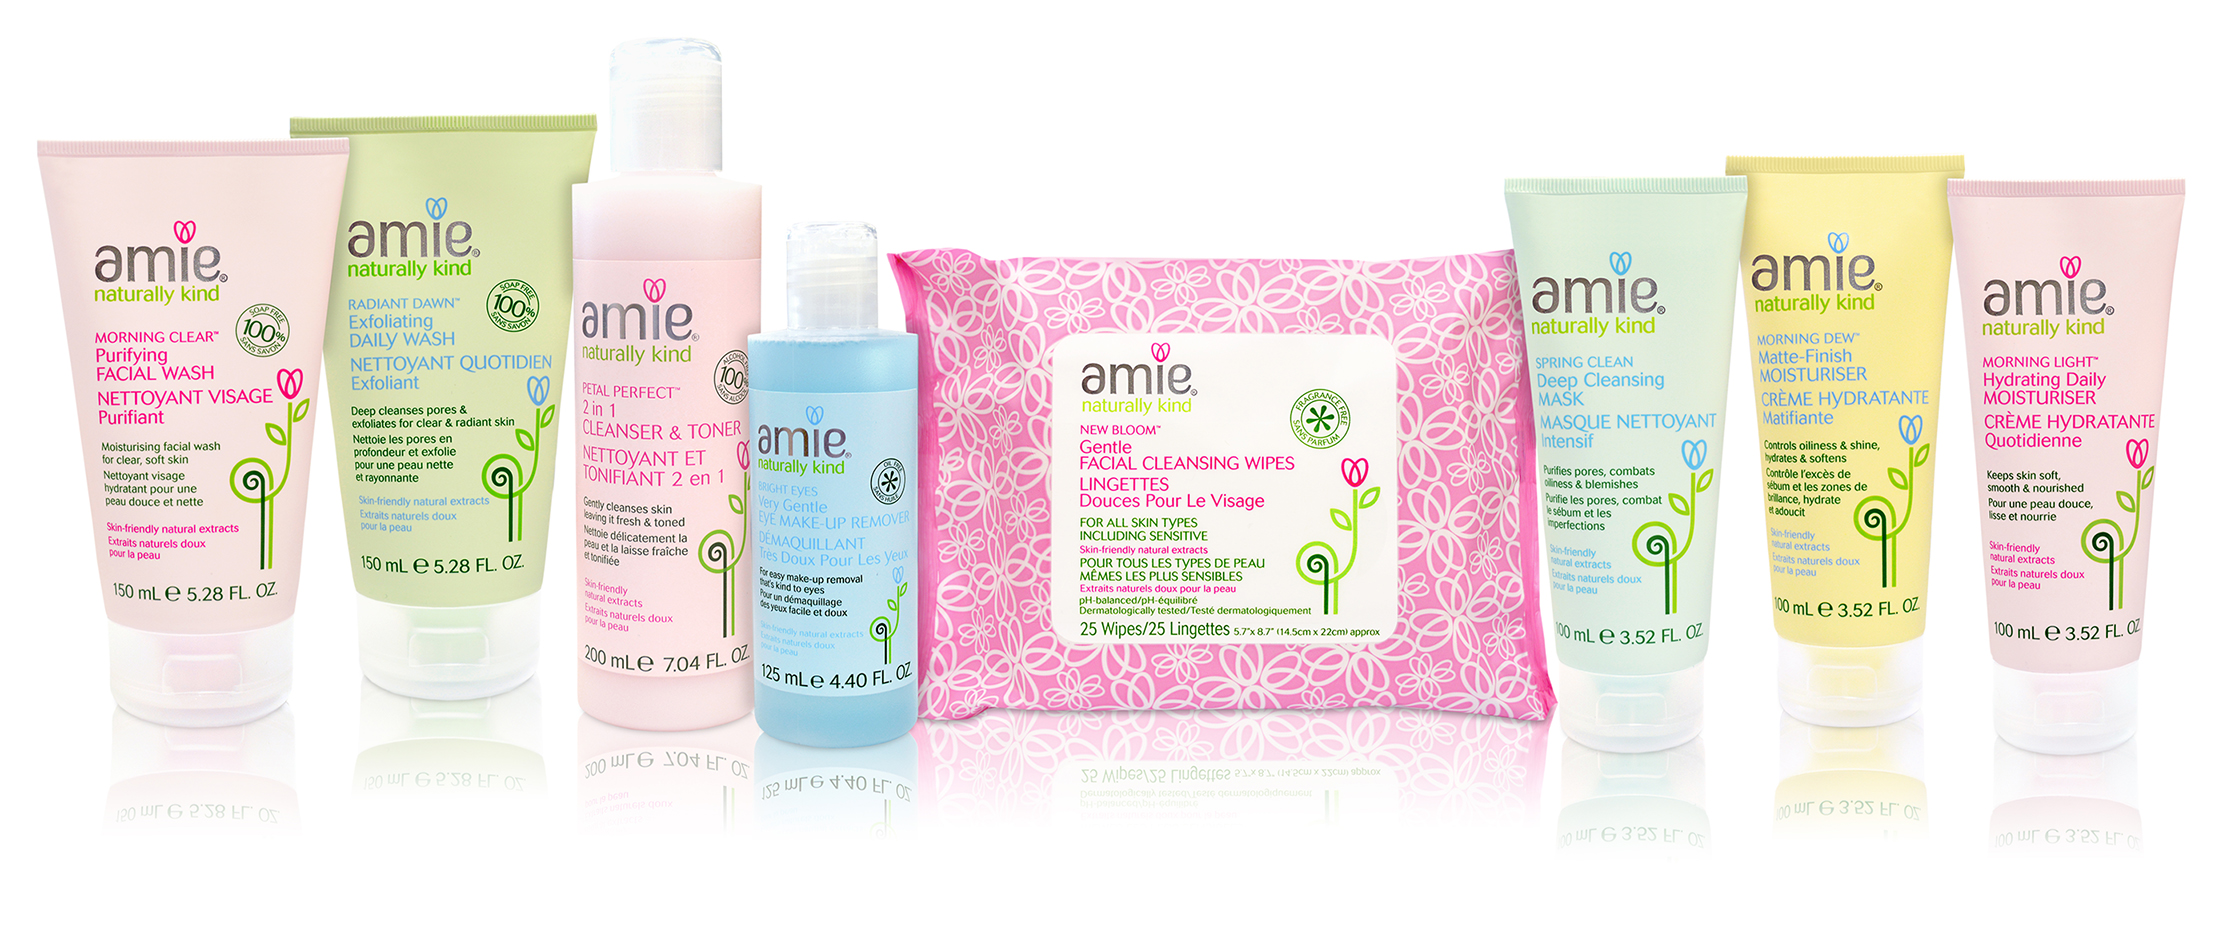 Amie Skincare Complete Collection Giveaway!